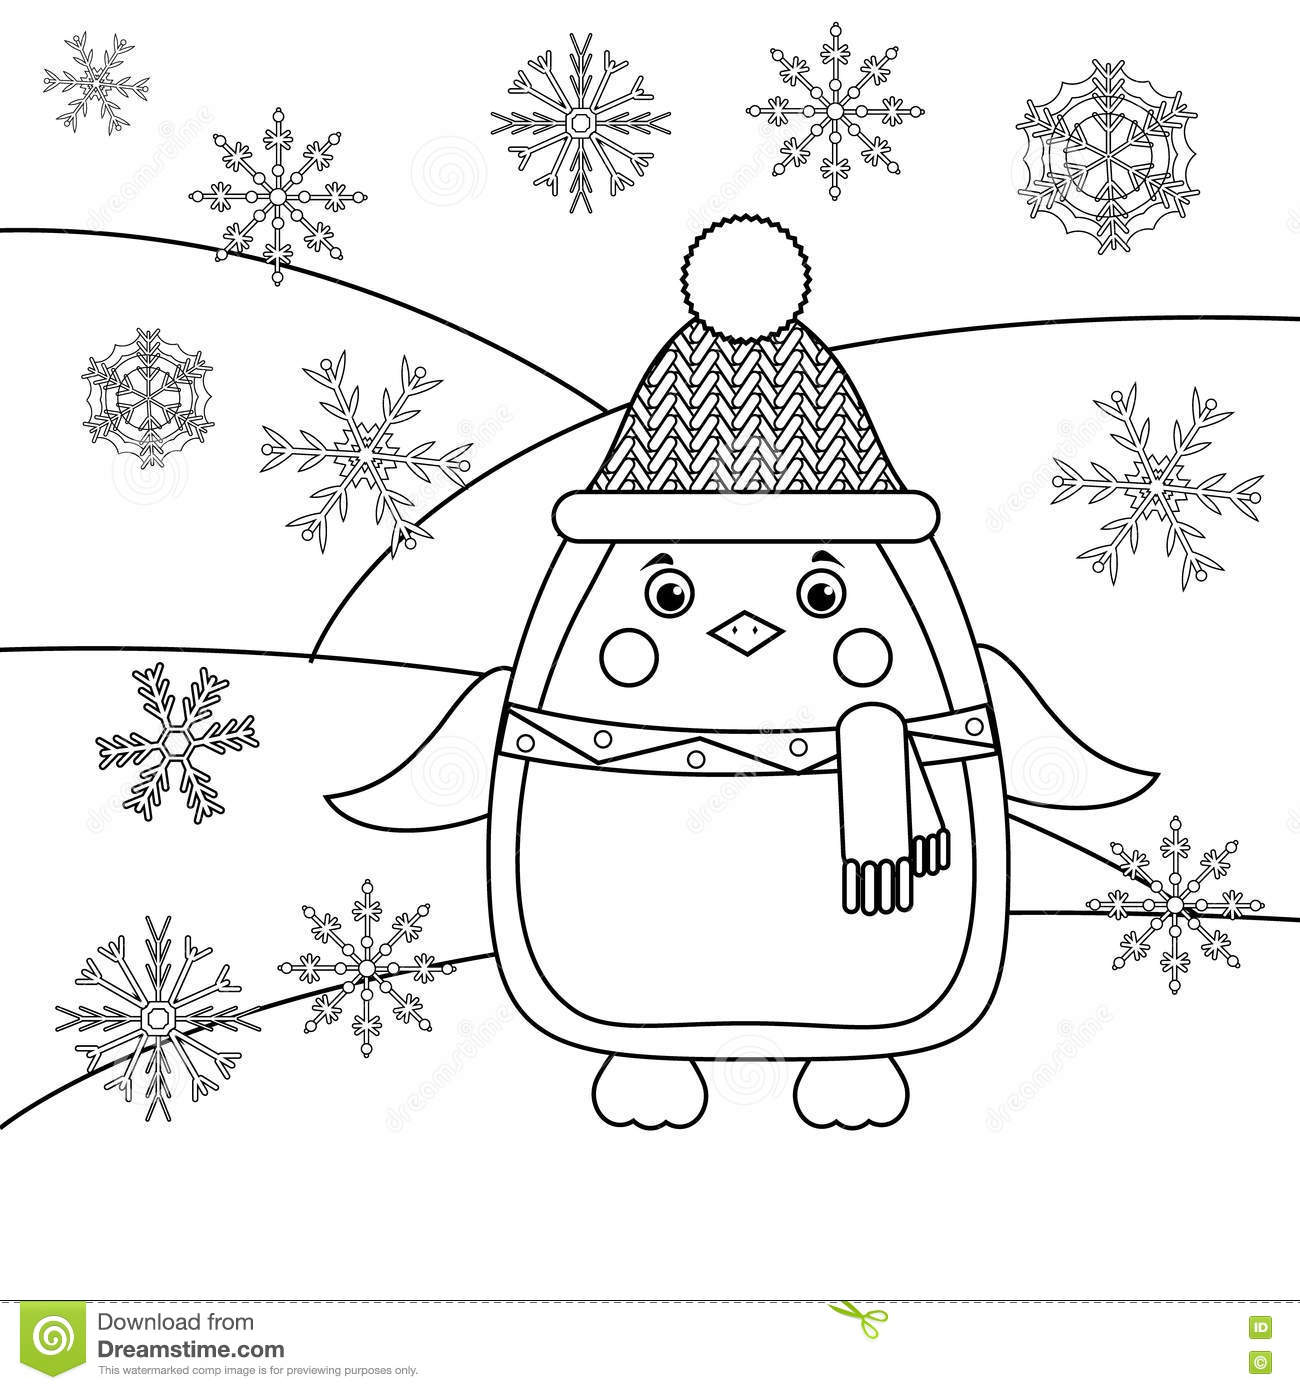 Snowflakes coloring page | Crafts and Worksheets for Preschool ... | 1390x1300